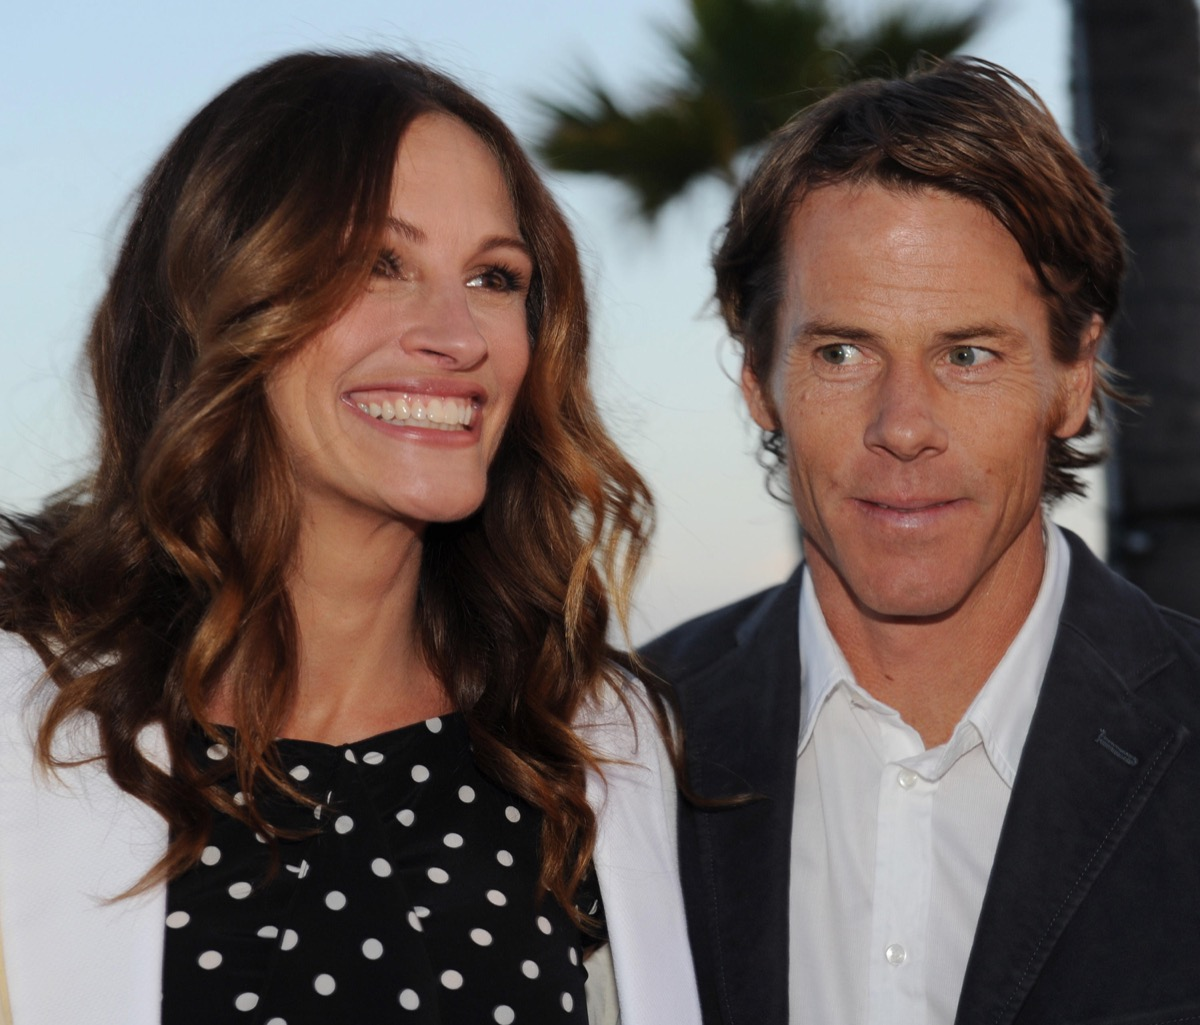 """Honorees Julia Roberts and her husband Danny Moder attend Heal The Bay's """"Bring Back The Beach"""" annual awards gala, held at The Jonathan Club in Santa Monica, California on May 17, 2012. UPI/Jim Ruymen"""